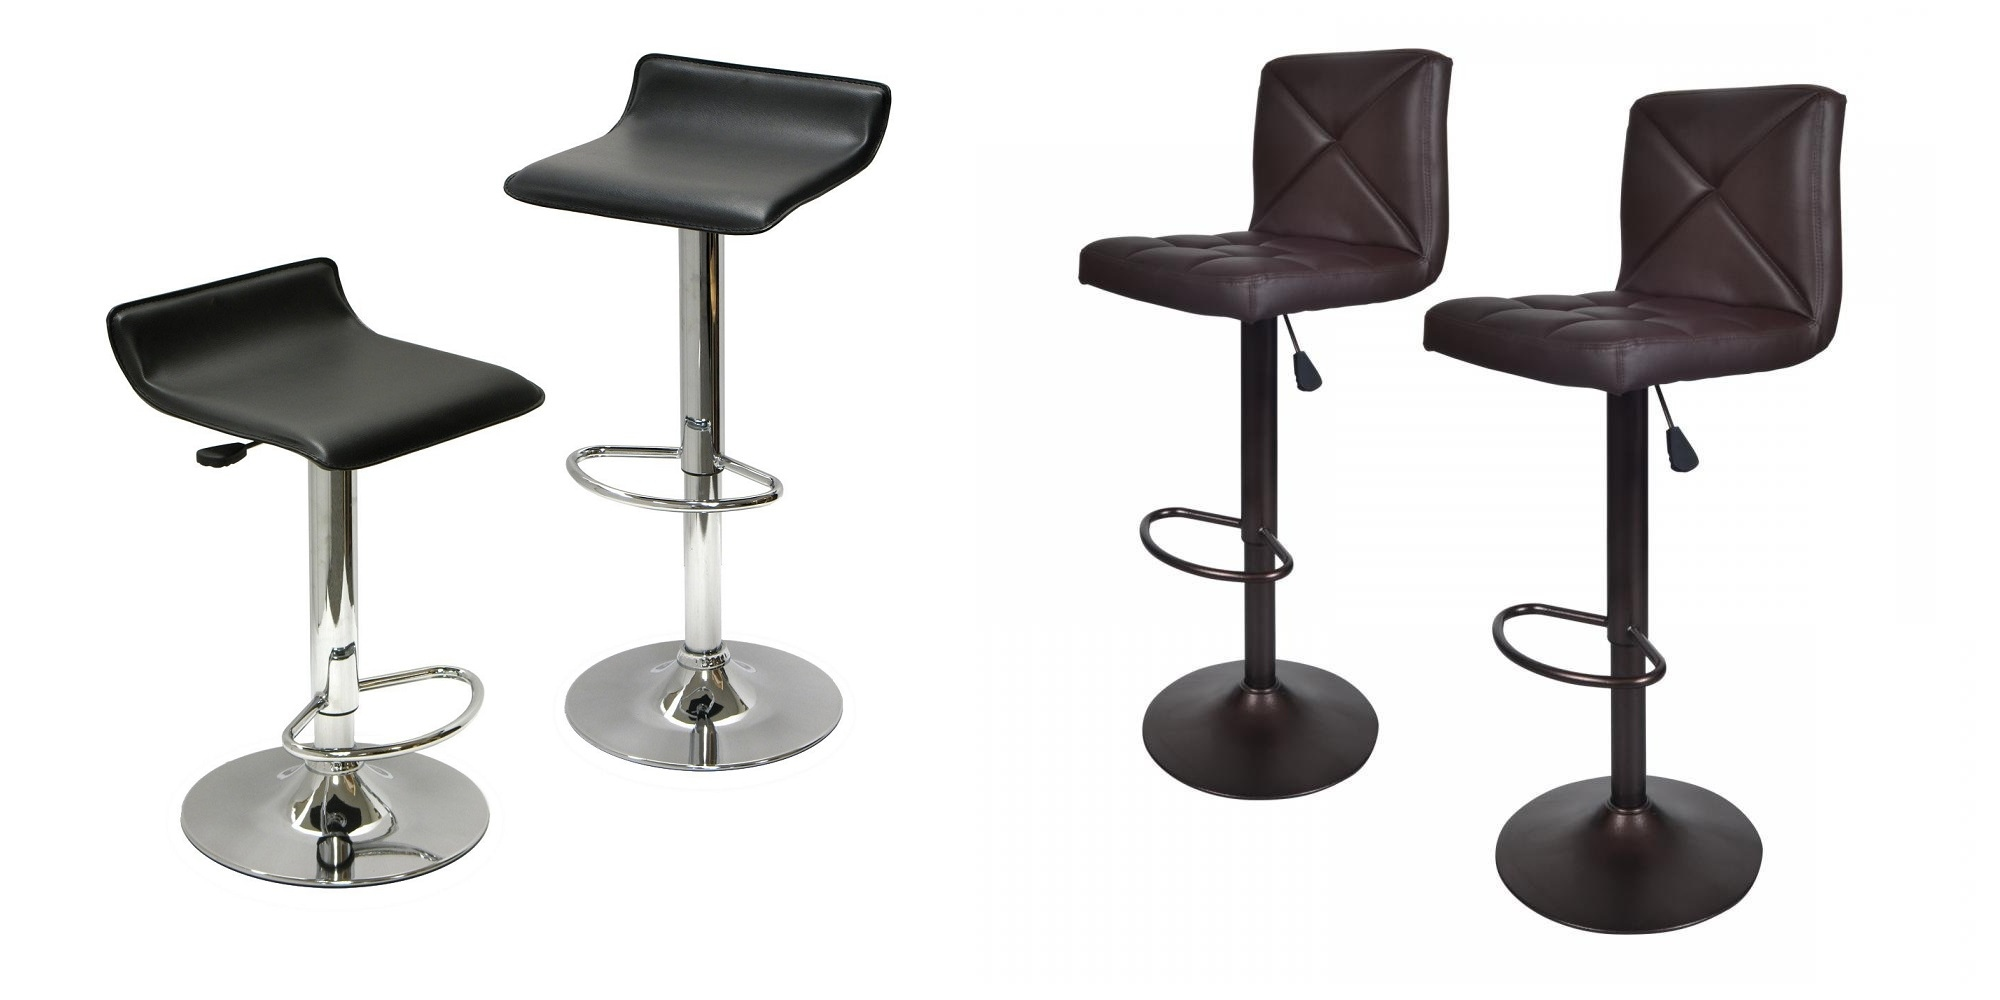 The cheapest and coolest adjustable swivel barstool